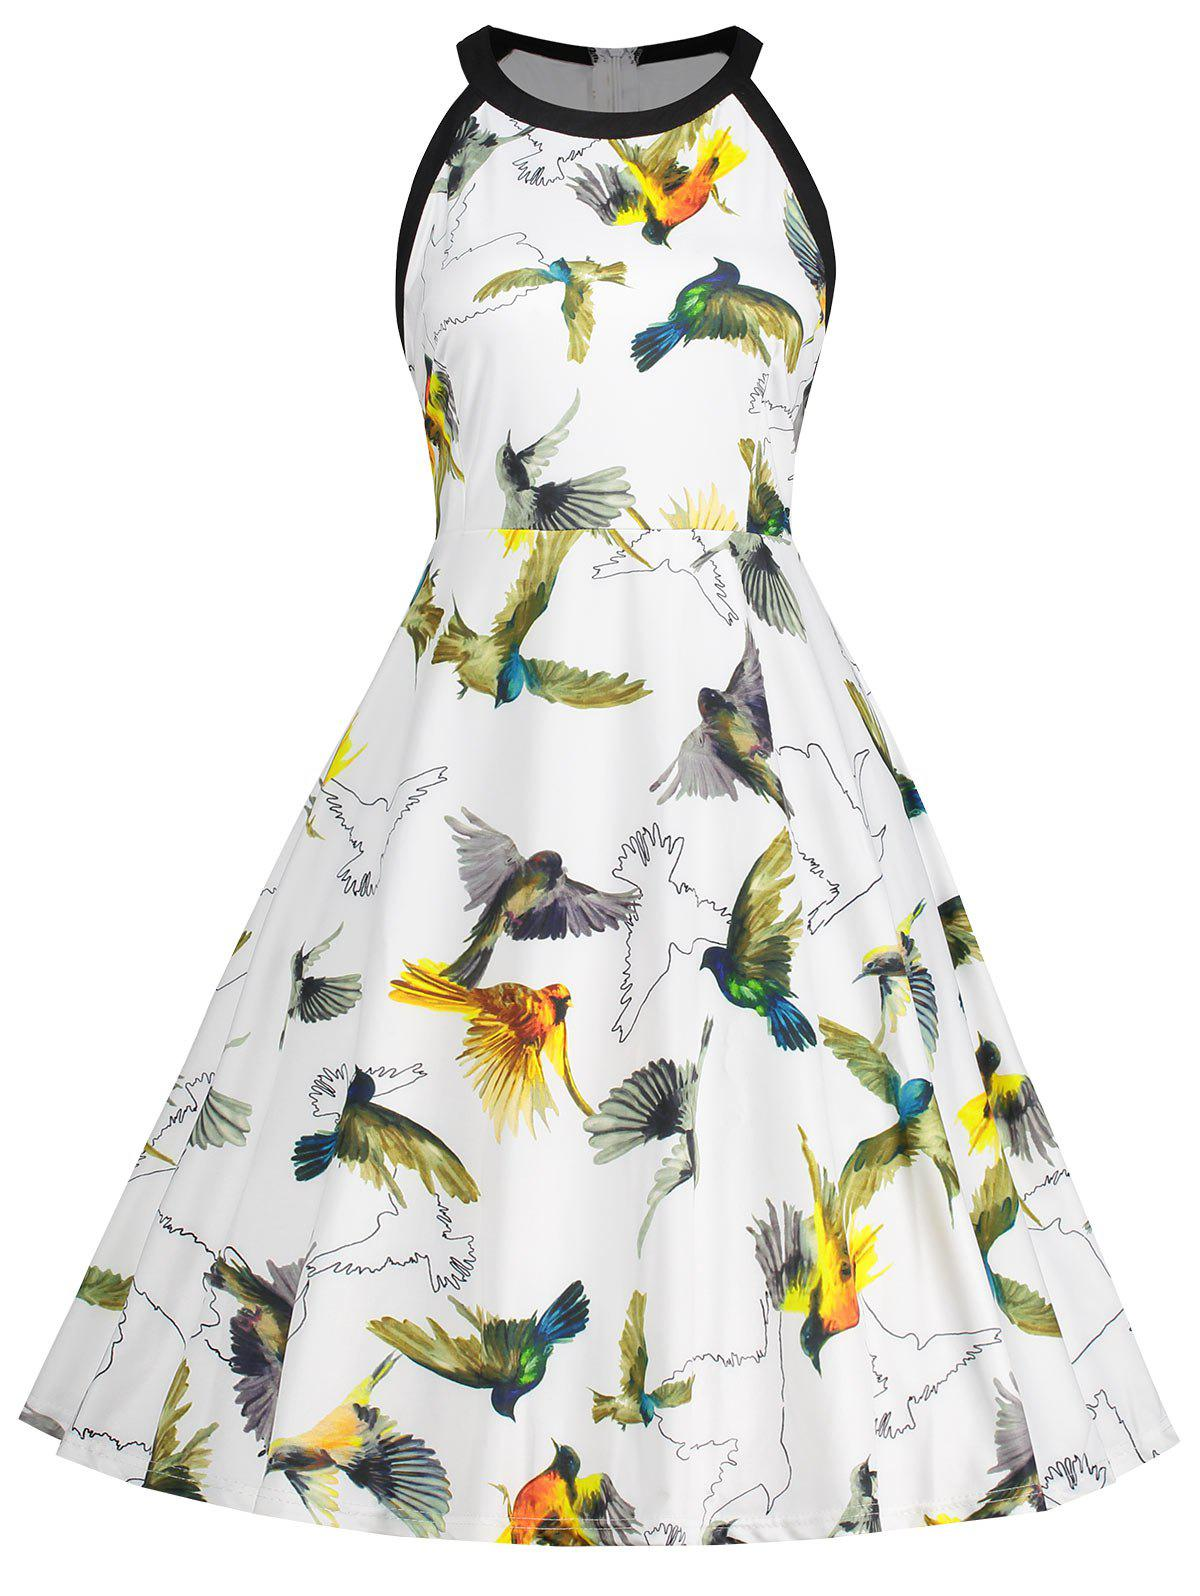 Hot Bird Print Sleeveless Plus Size Dress